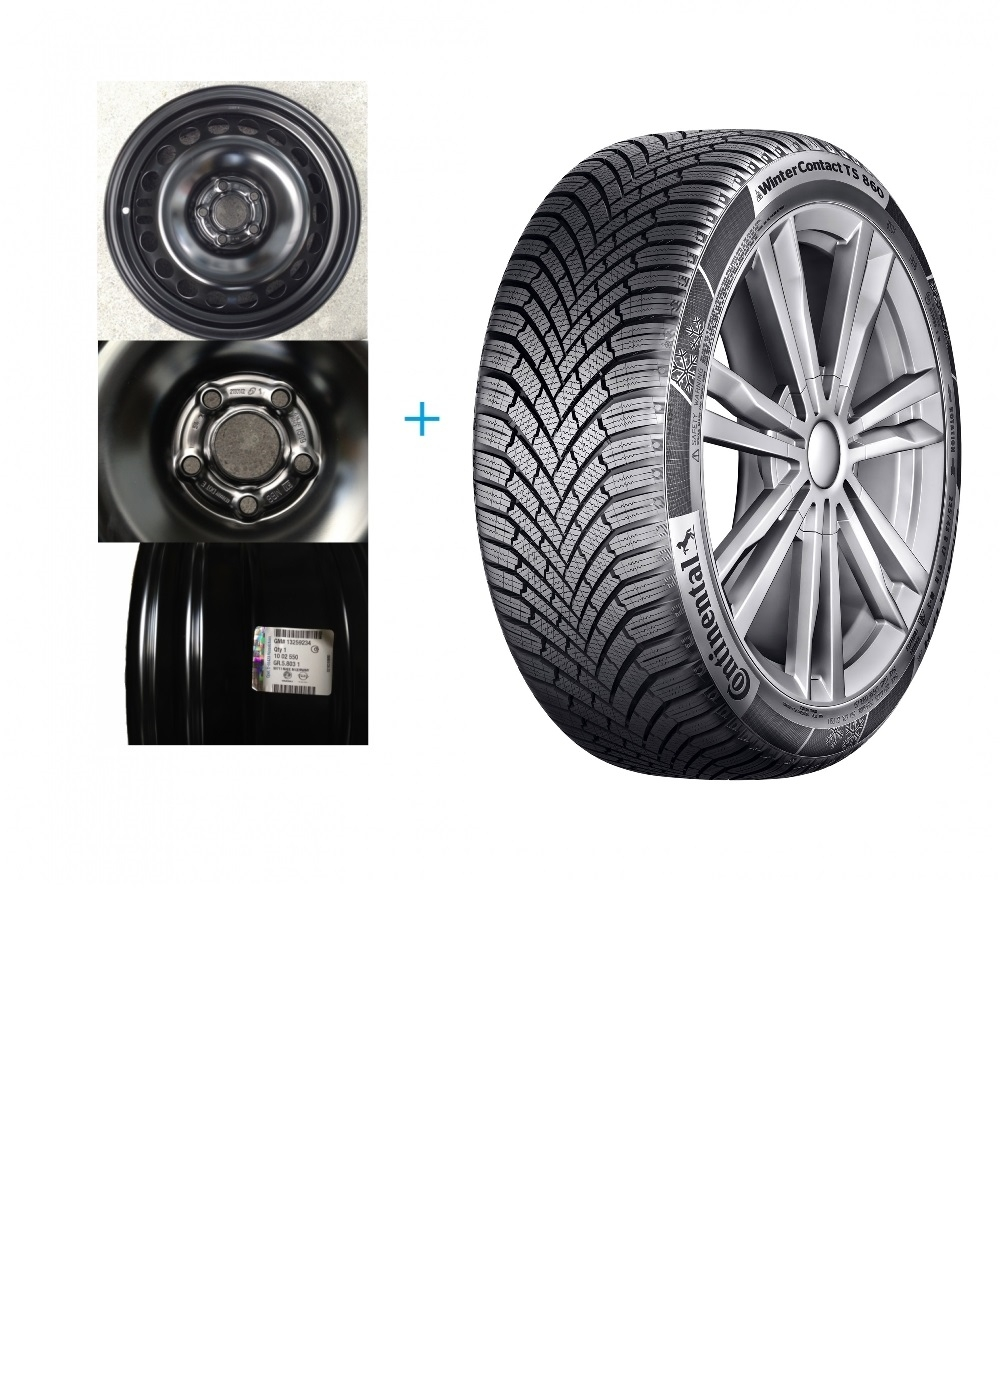 Kit janta Opel Astra K si anvelopa iarna 205/55/R16 Continental Winter Contact TS860 91H Piese auto Opel Astra K